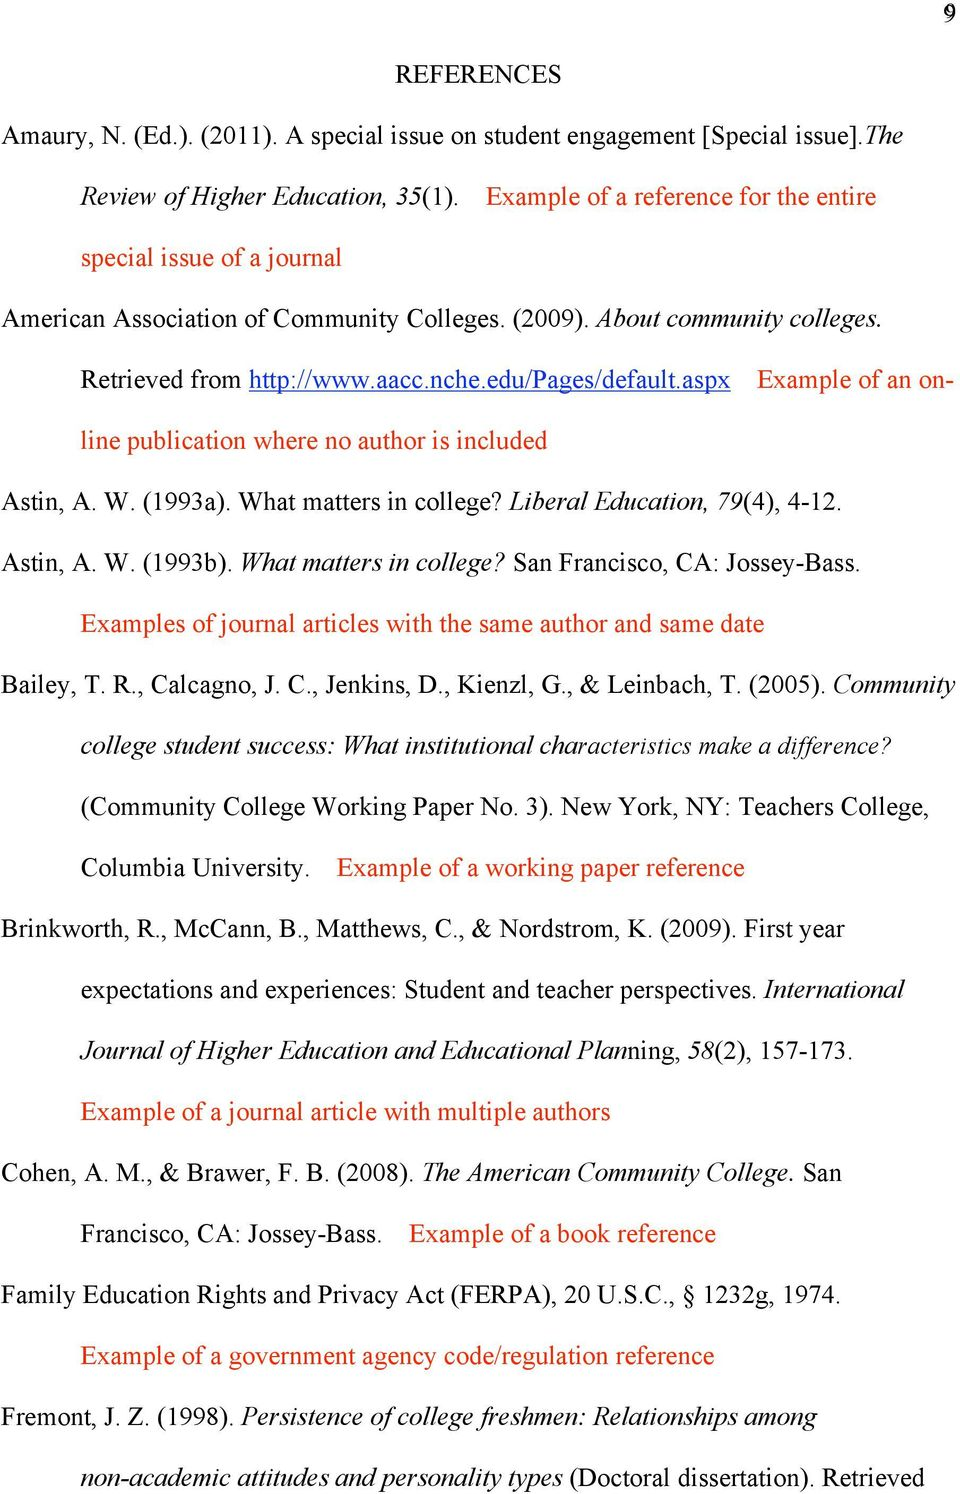 aspx Example of an online publication where no author is included Astin, A. W. (1993a). What matters in college? Liberal Education, 79(4), 4-12. Astin, A. W. (1993b). What matters in college? San Francisco, CA: Jossey-Bass.